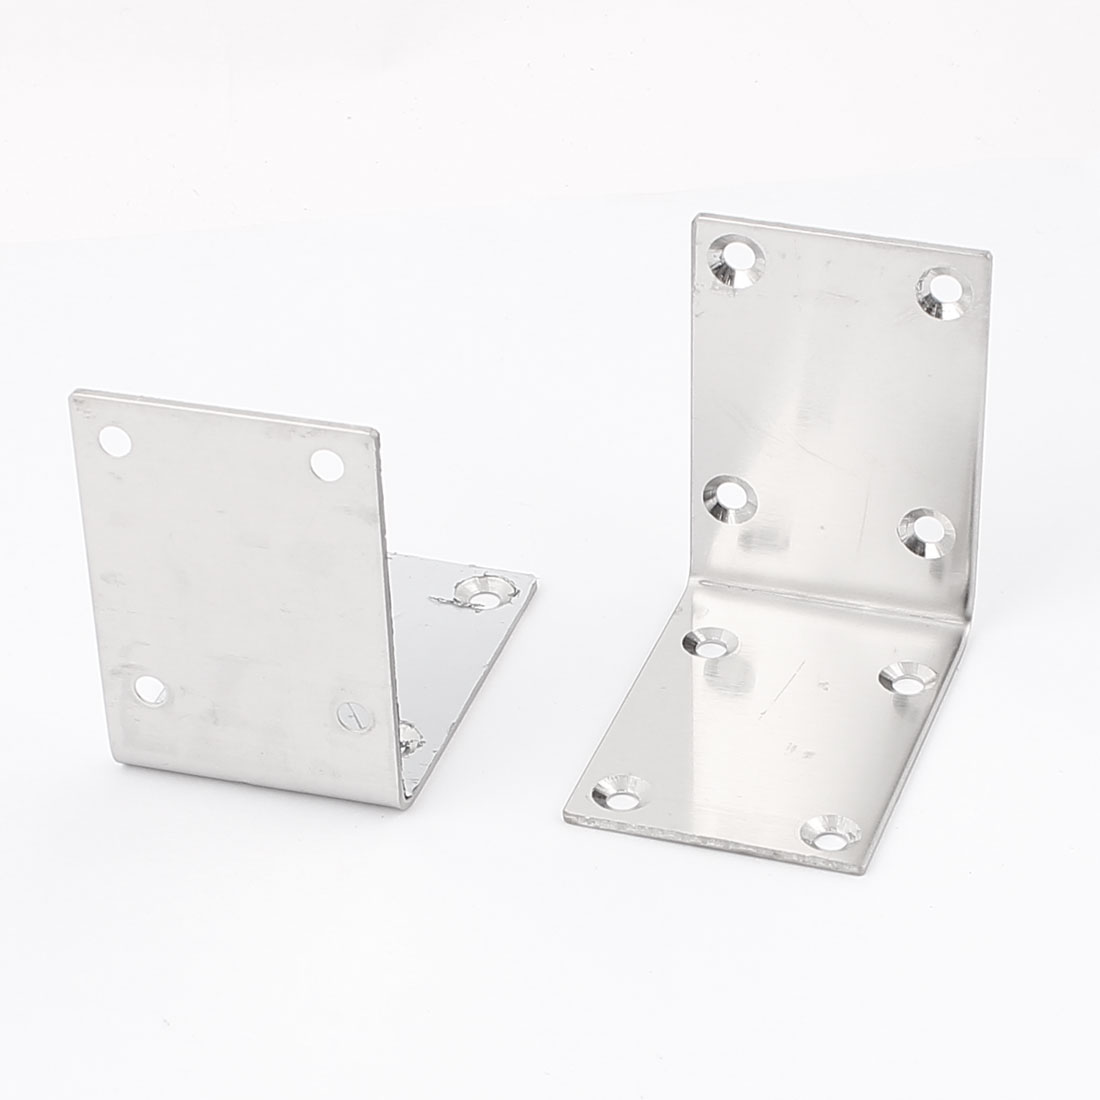 70mmx70mmx49mm Shelf Support Corner Brace Joint Metal Right Angle Bracket 2Pcs